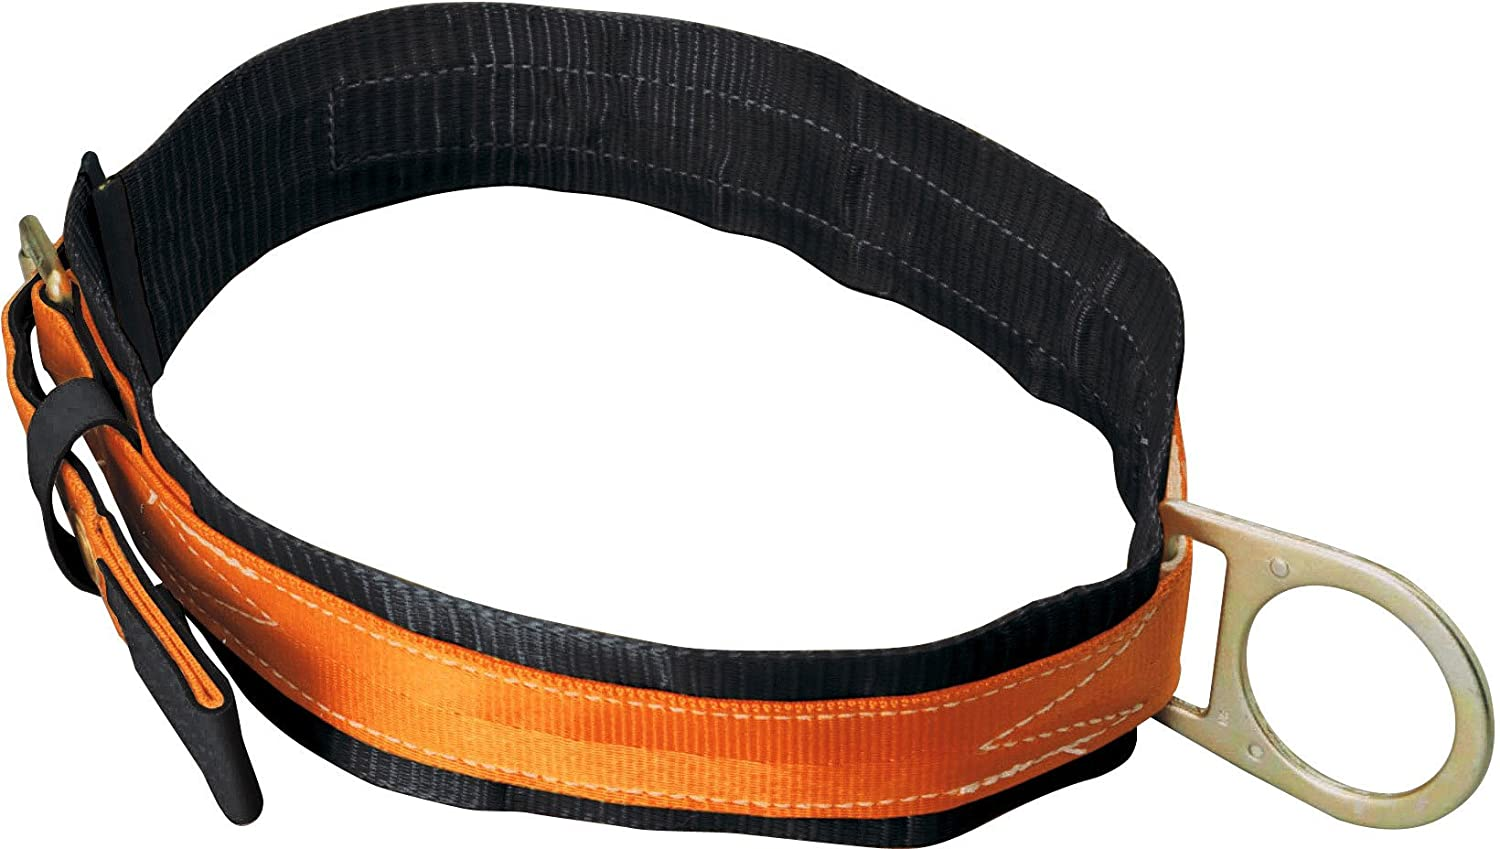 Miller Titan by Honeywell T3310/LAF Tongue Buckle Body Belt with Single D-Ring and 3-Inch Back Pad, Large